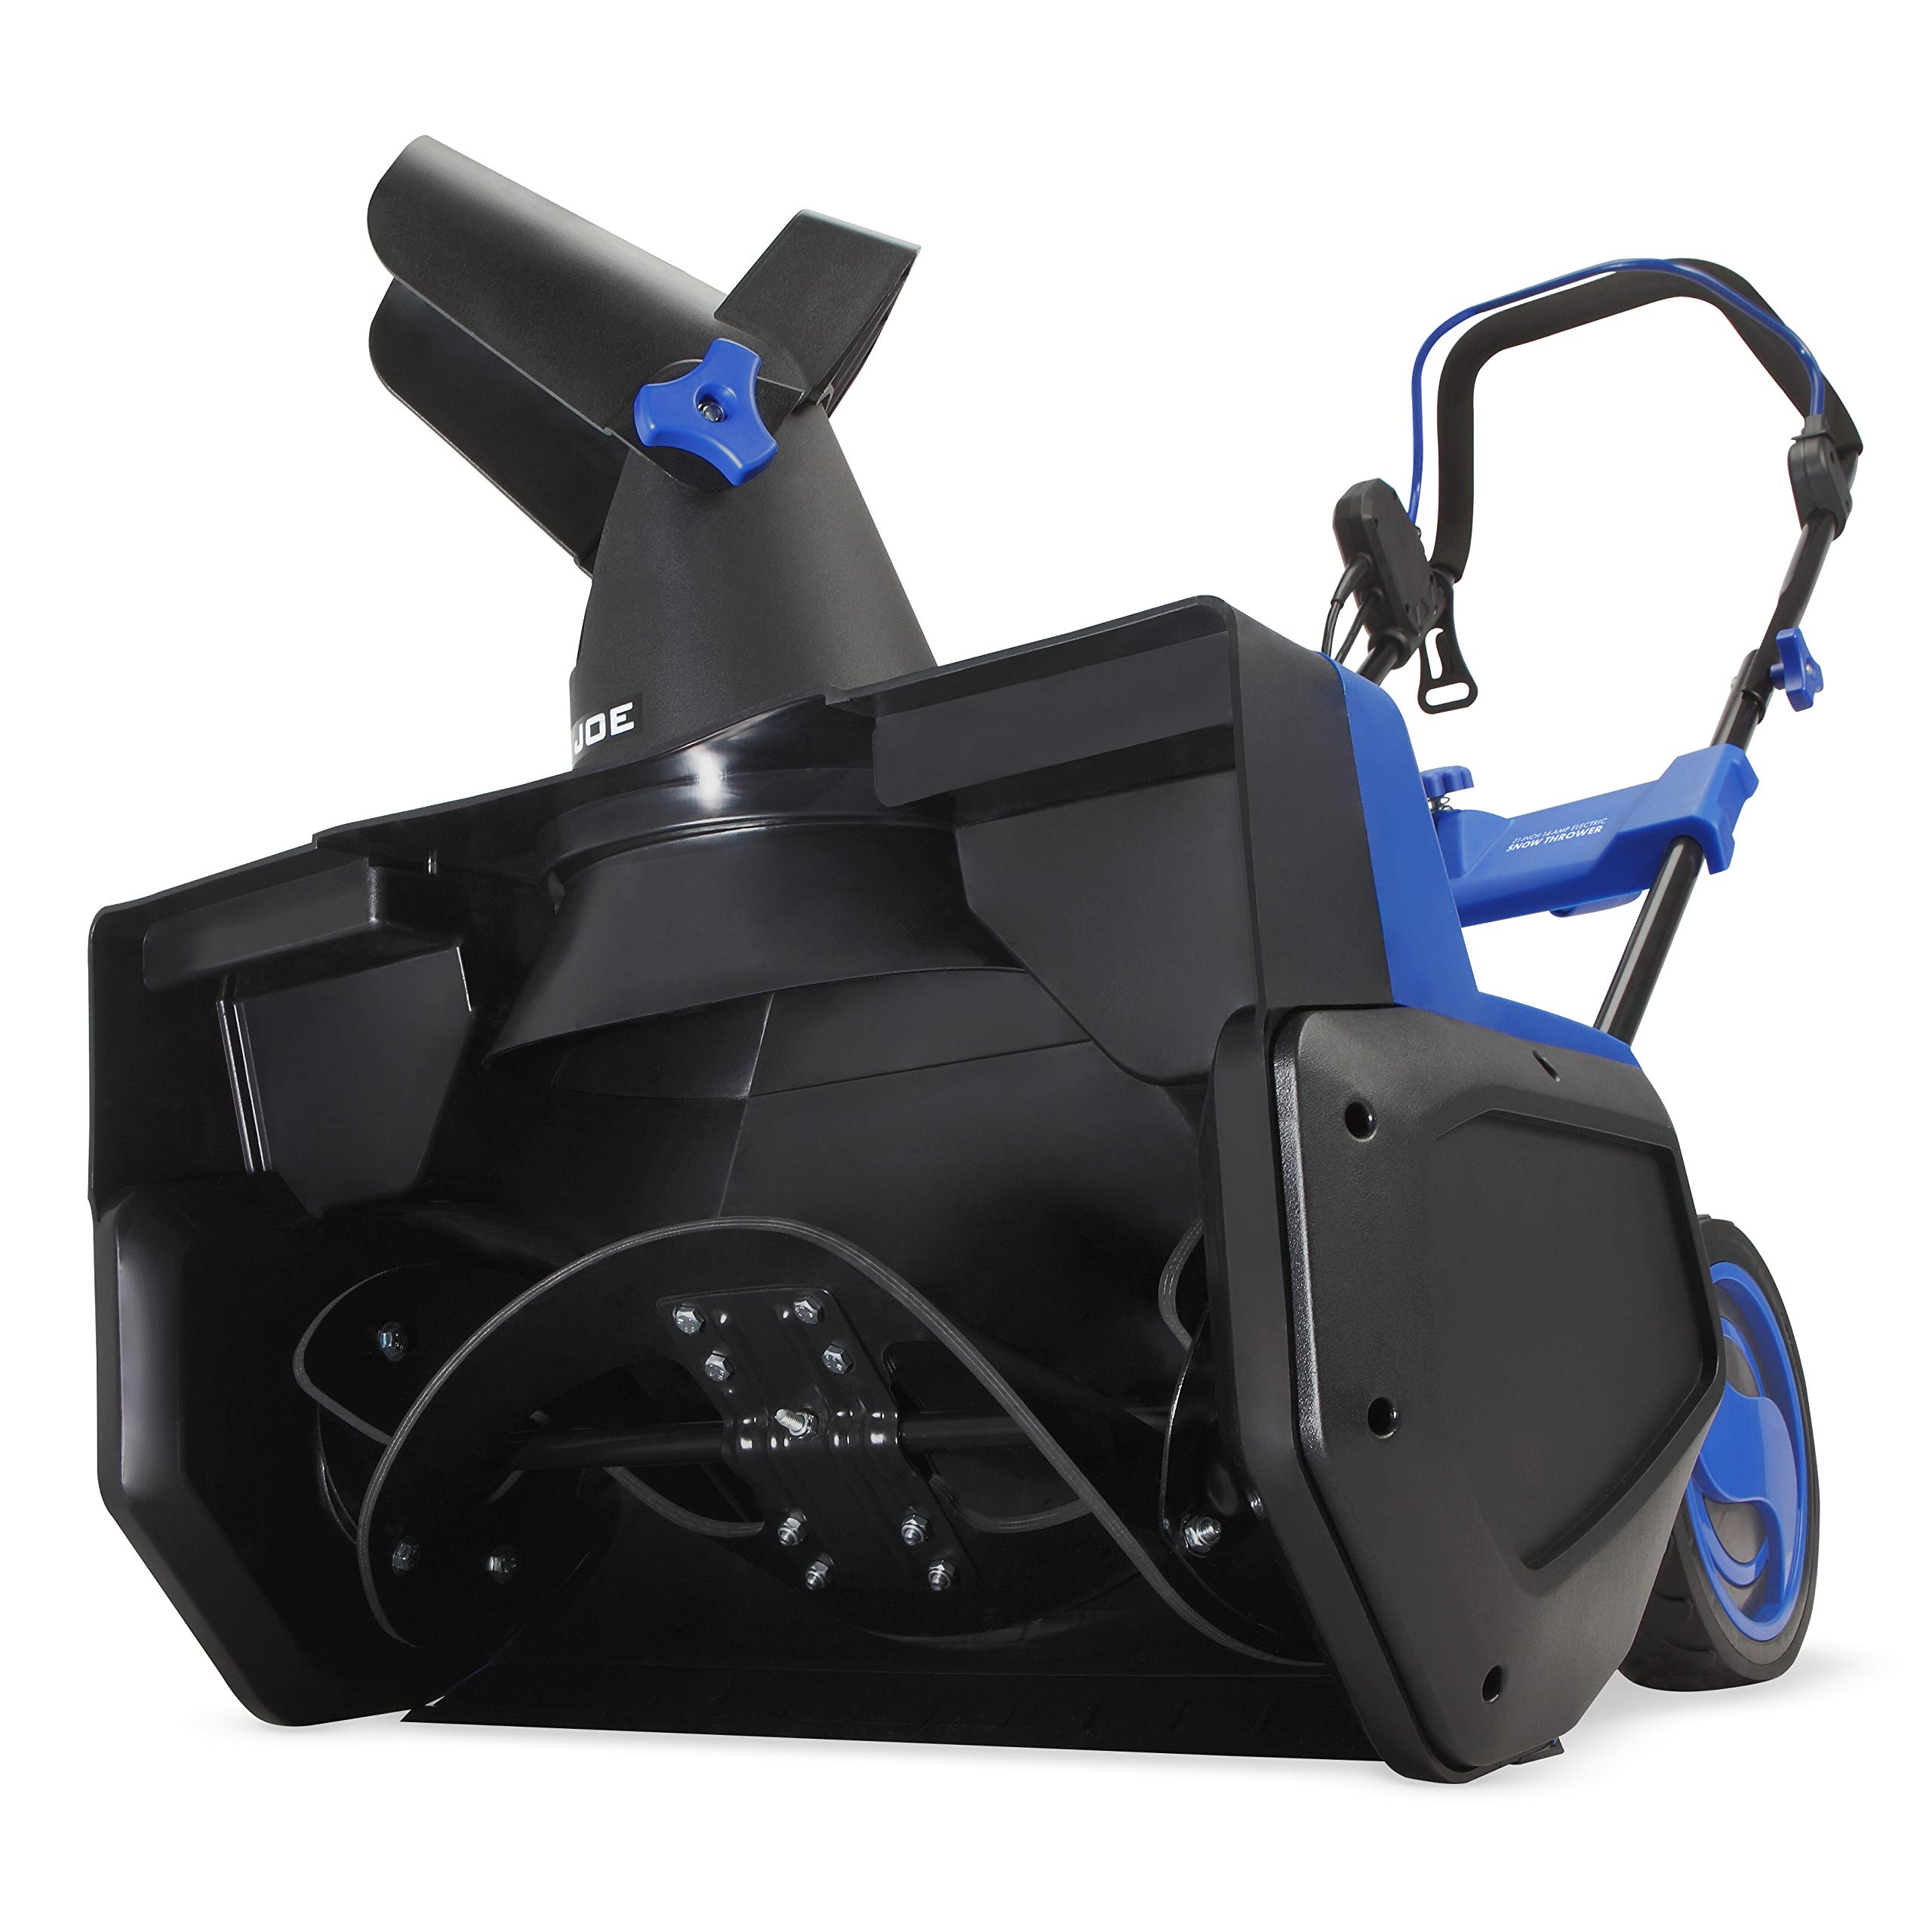 Snow Joe SJ624E Electric Single Stage Snow Thrower | 21-Inch | 14 Amp Motor by Snow Joe